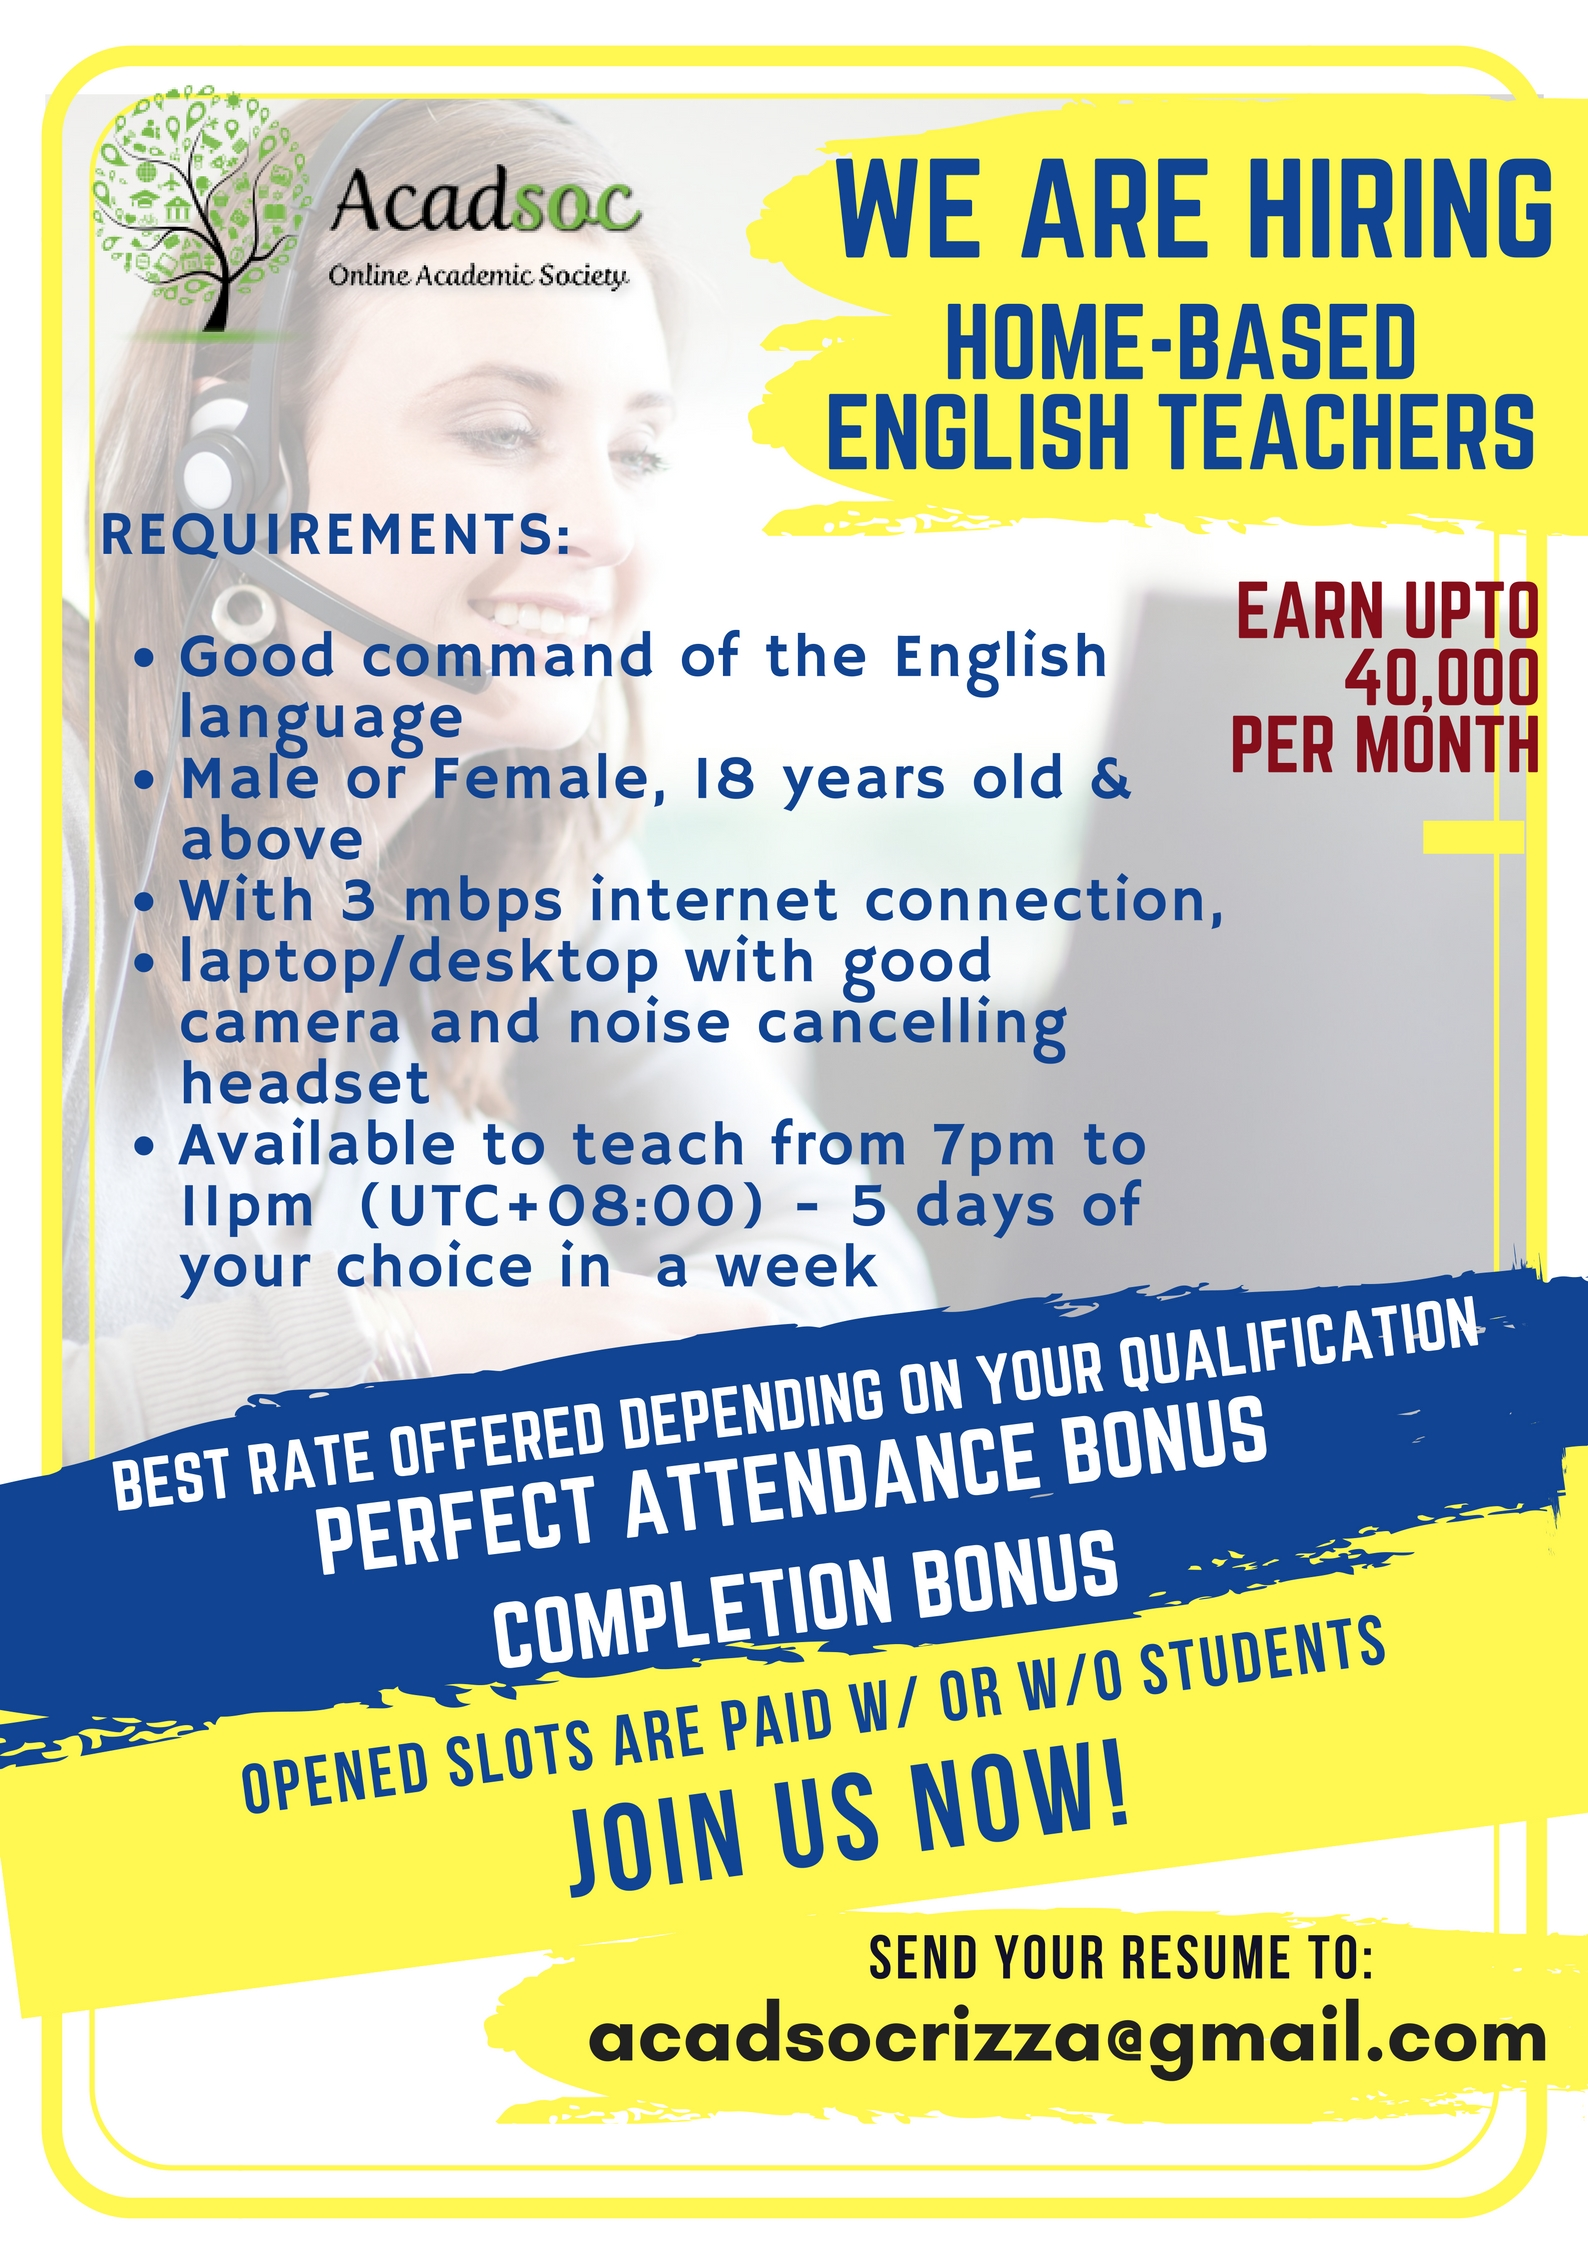 Acadsoc From Philippines Is Looking For A Home Based Online English